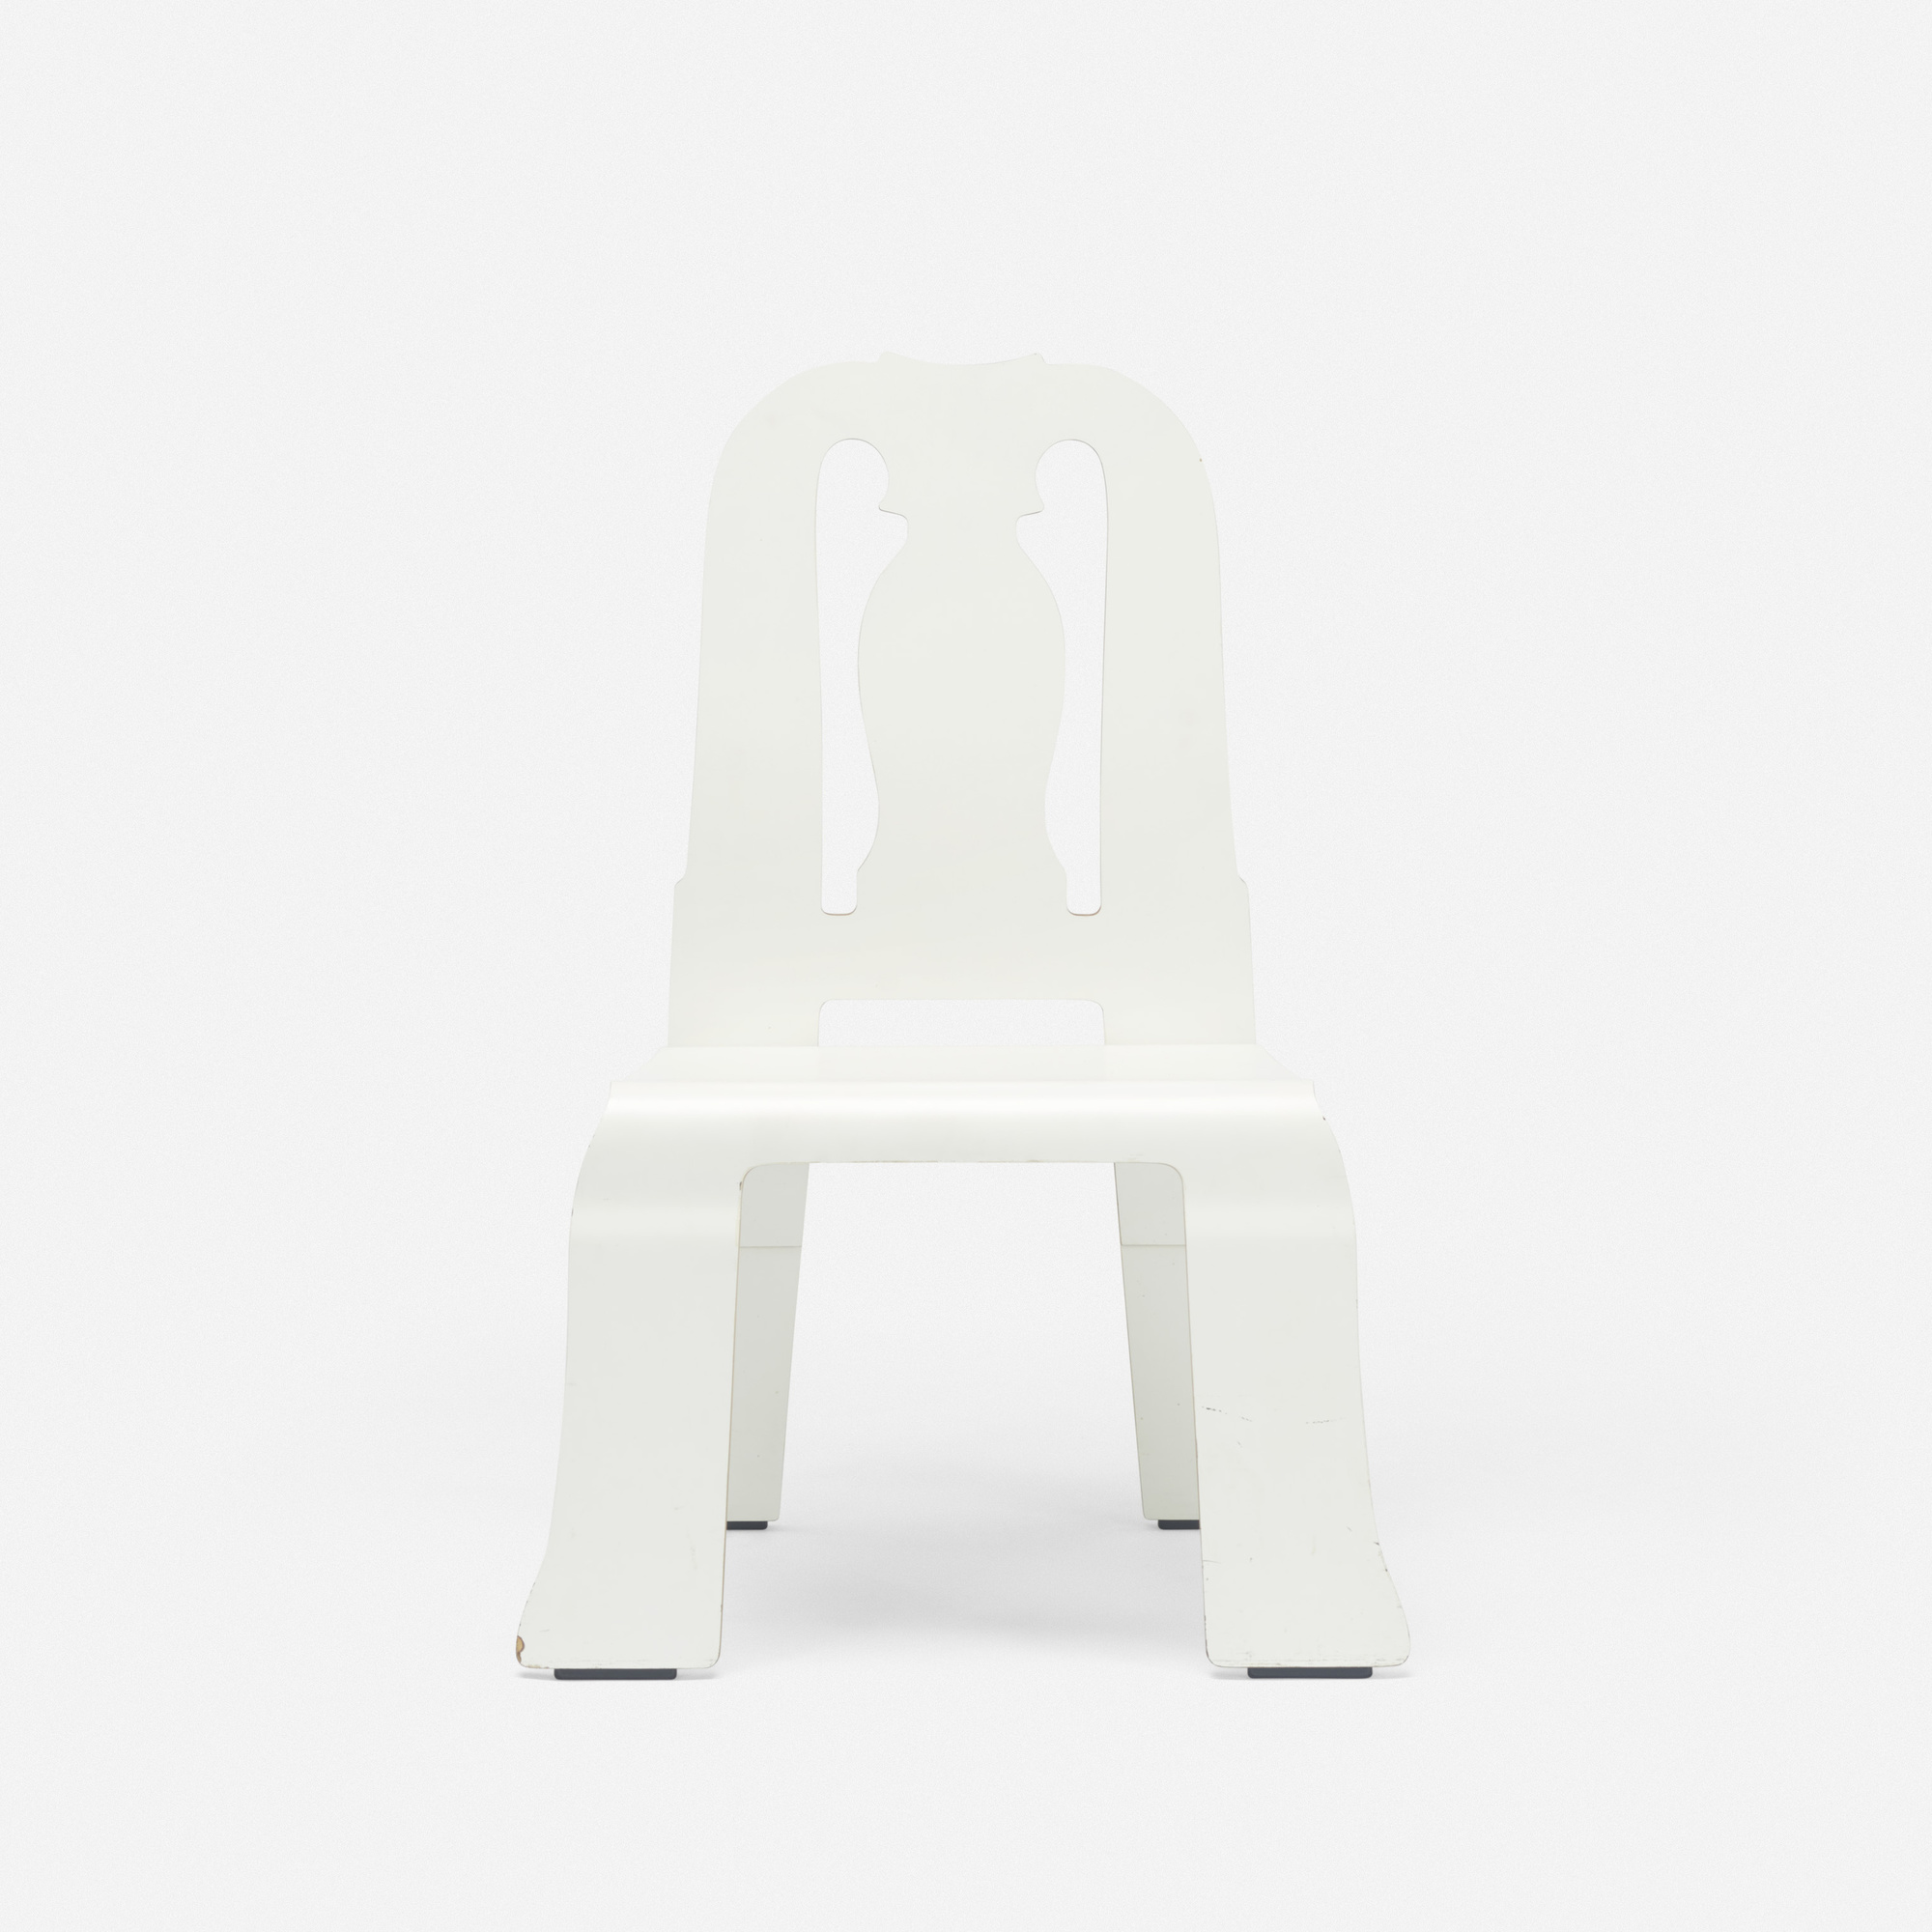 405: Robert Venturi / Queen Anne chair (1 of 2)